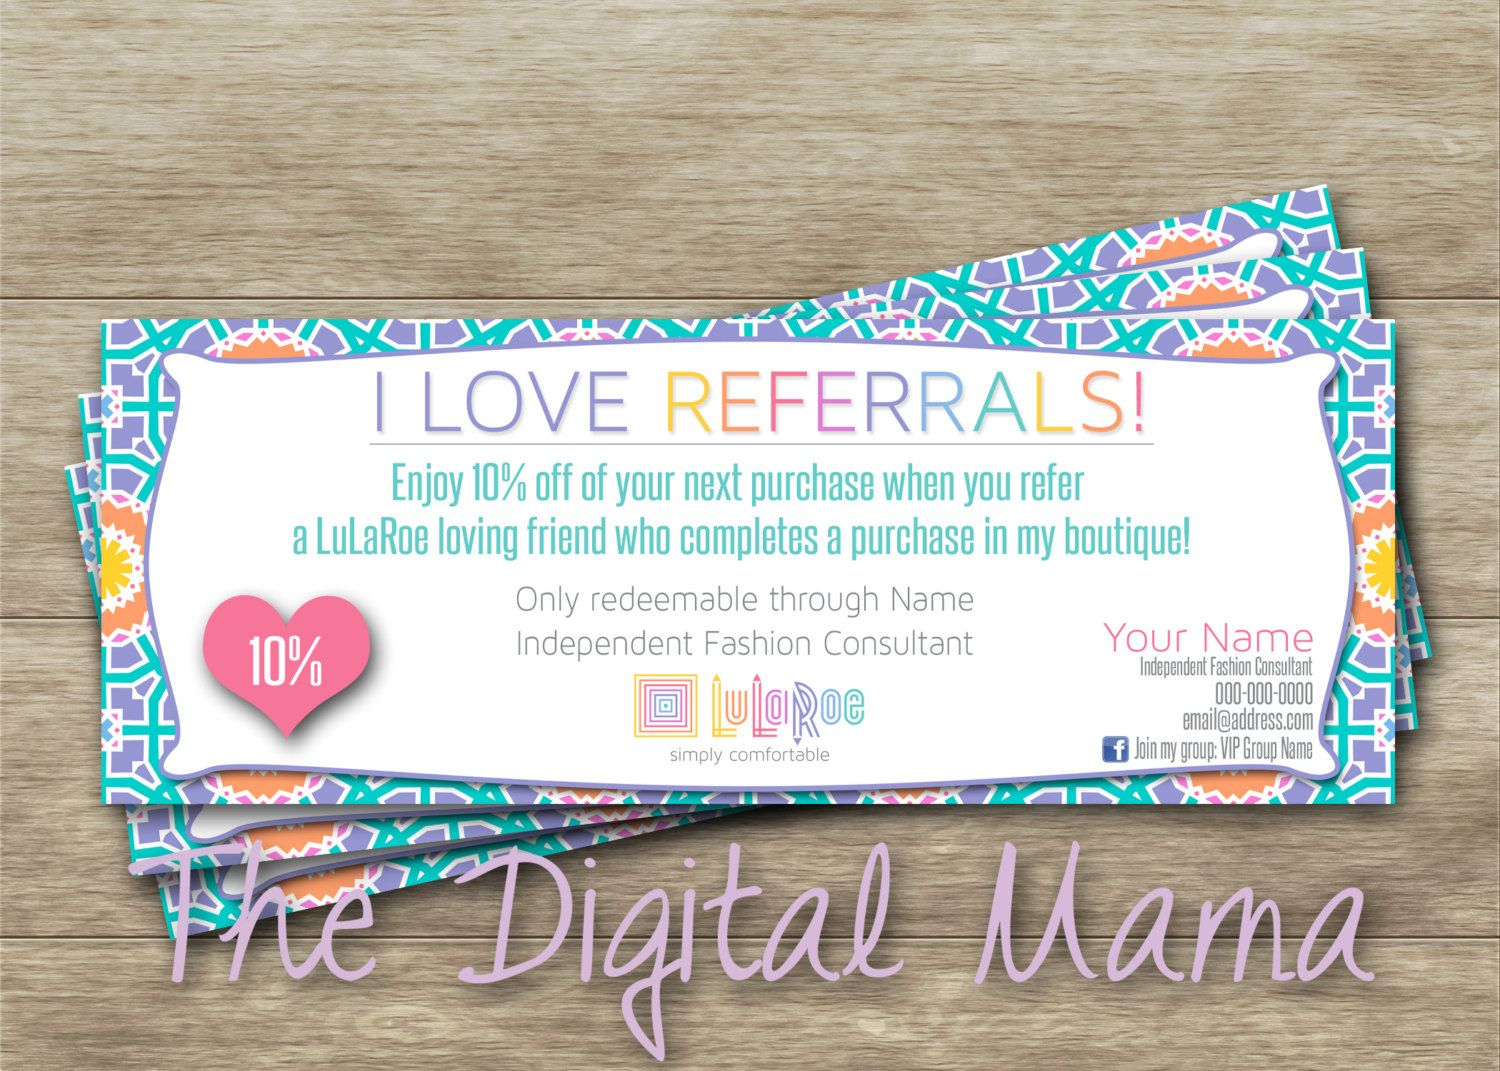 Lularoe Referral Coupon  Lularoe Consulant Coupon  Lularoe